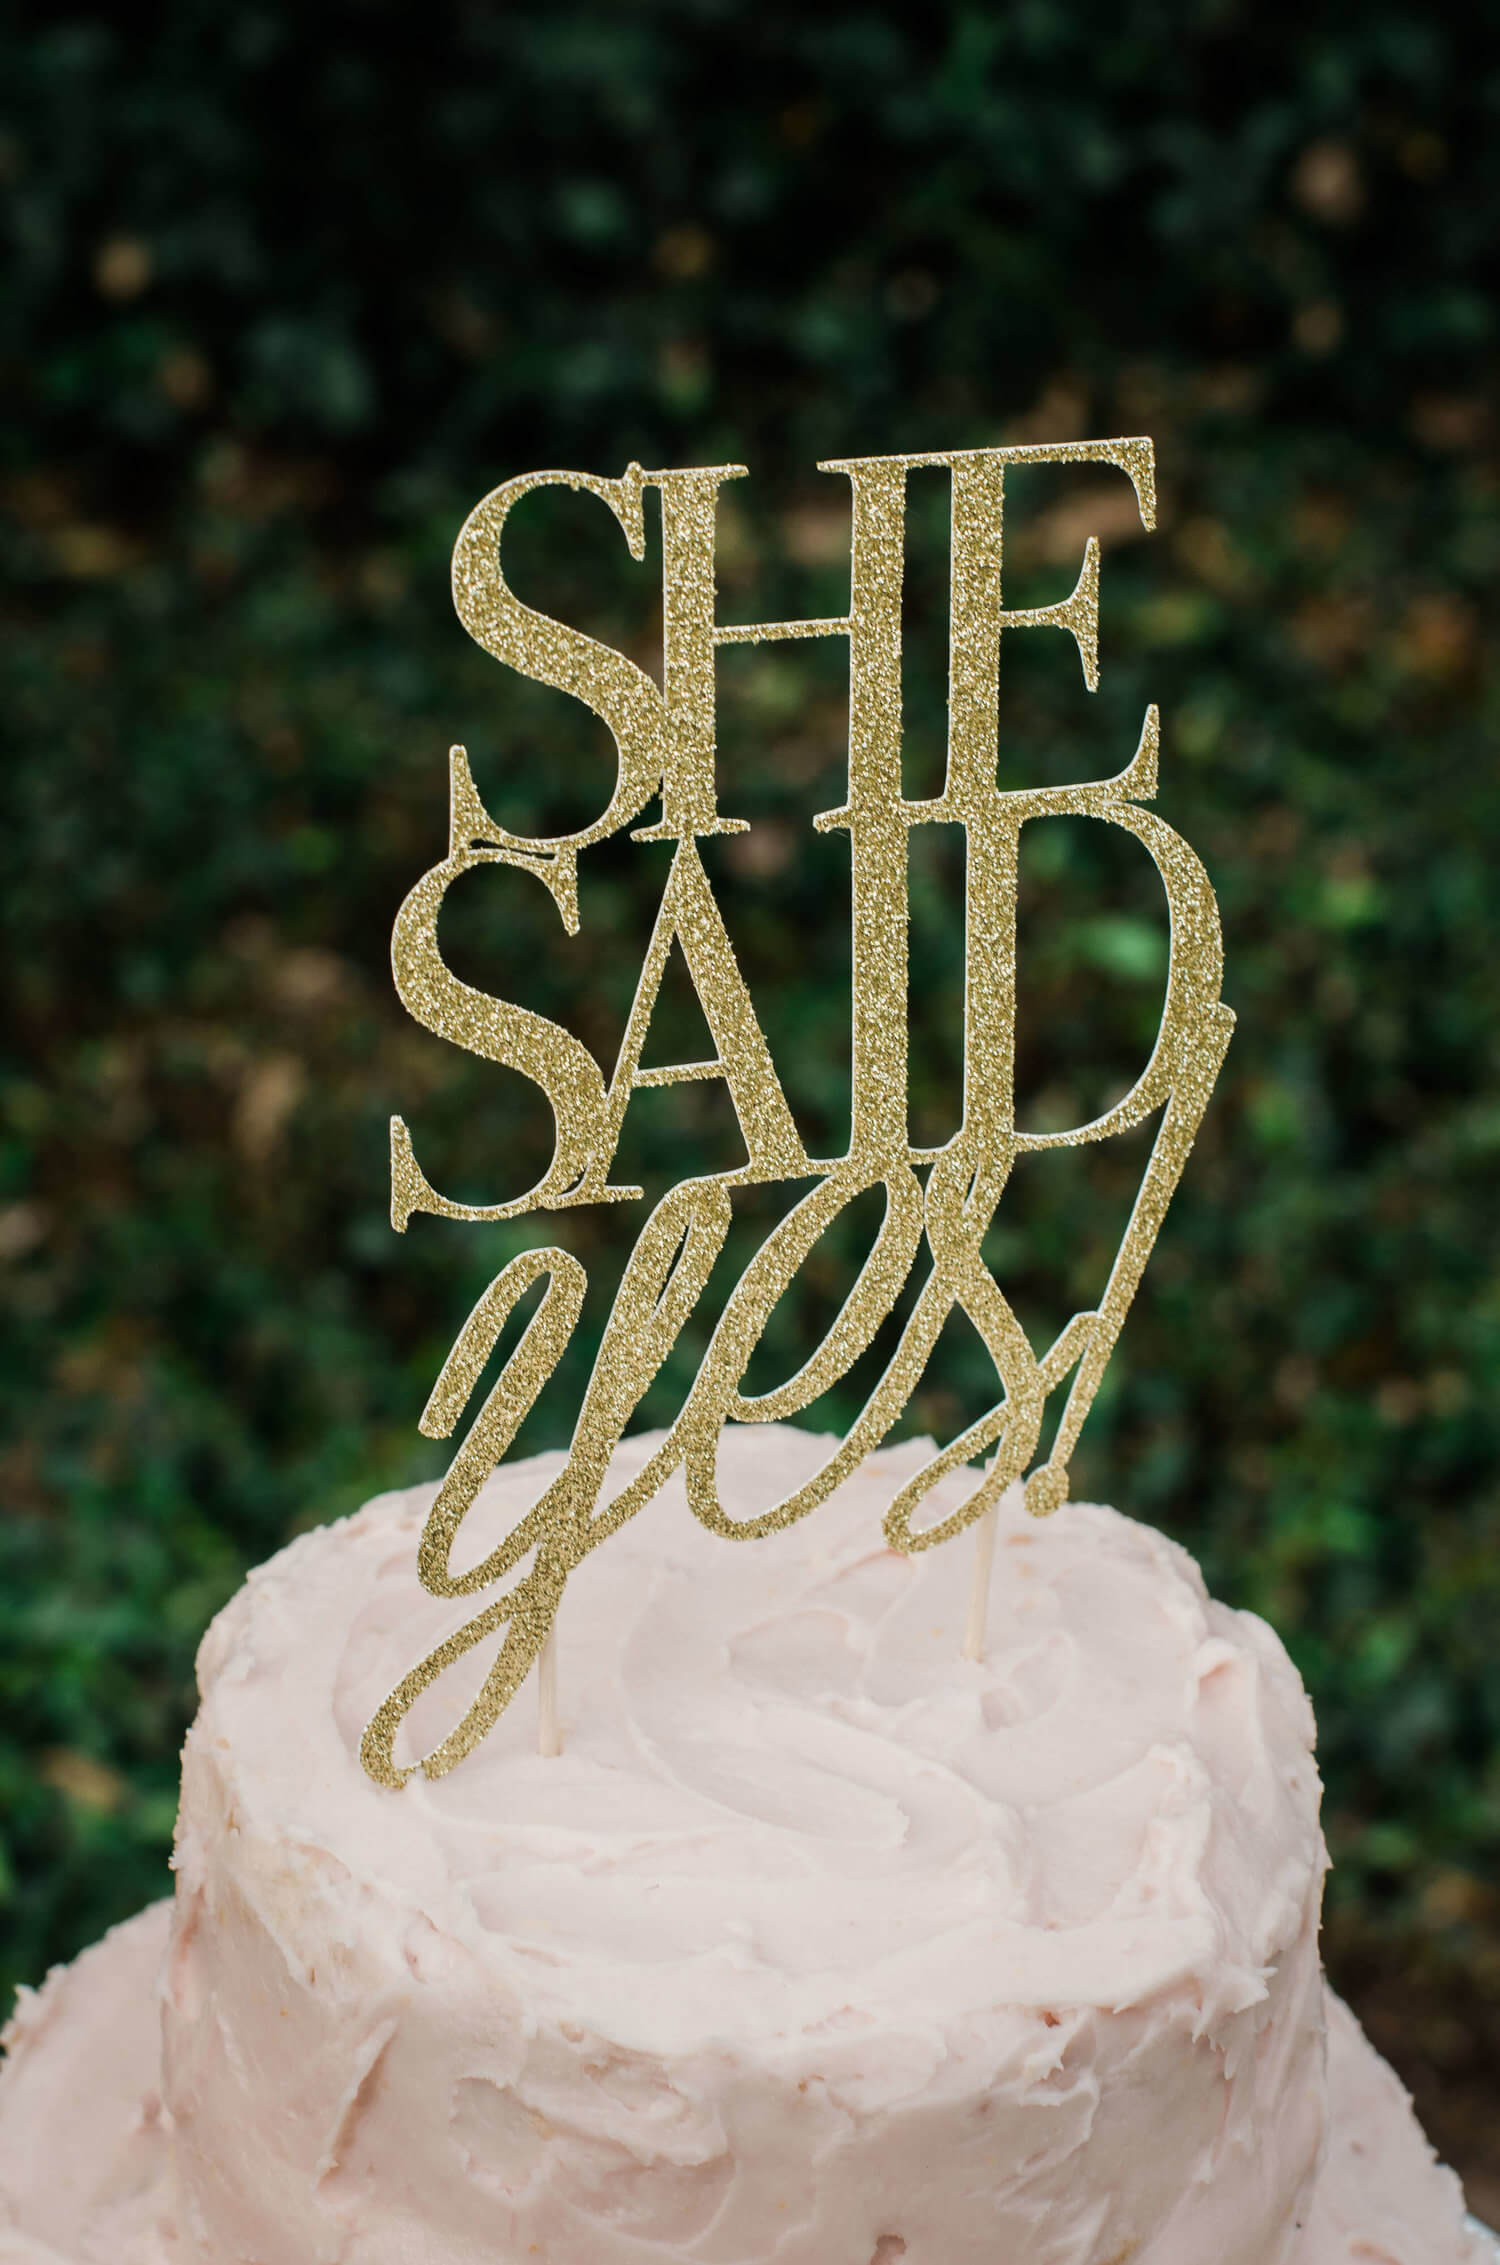 She said Yes /She said yes cake topper / Bridal Shower dessert table / Garden Bridal / Shabby Chic Bridal Shower idea / Baby Shower party ideas and decor / Bridal Shower desserts / Baby Shower desserts ideas / Shabby Chic dessert table idea / Style by Carolina from MINT Event Design / www.minteventdesign.com